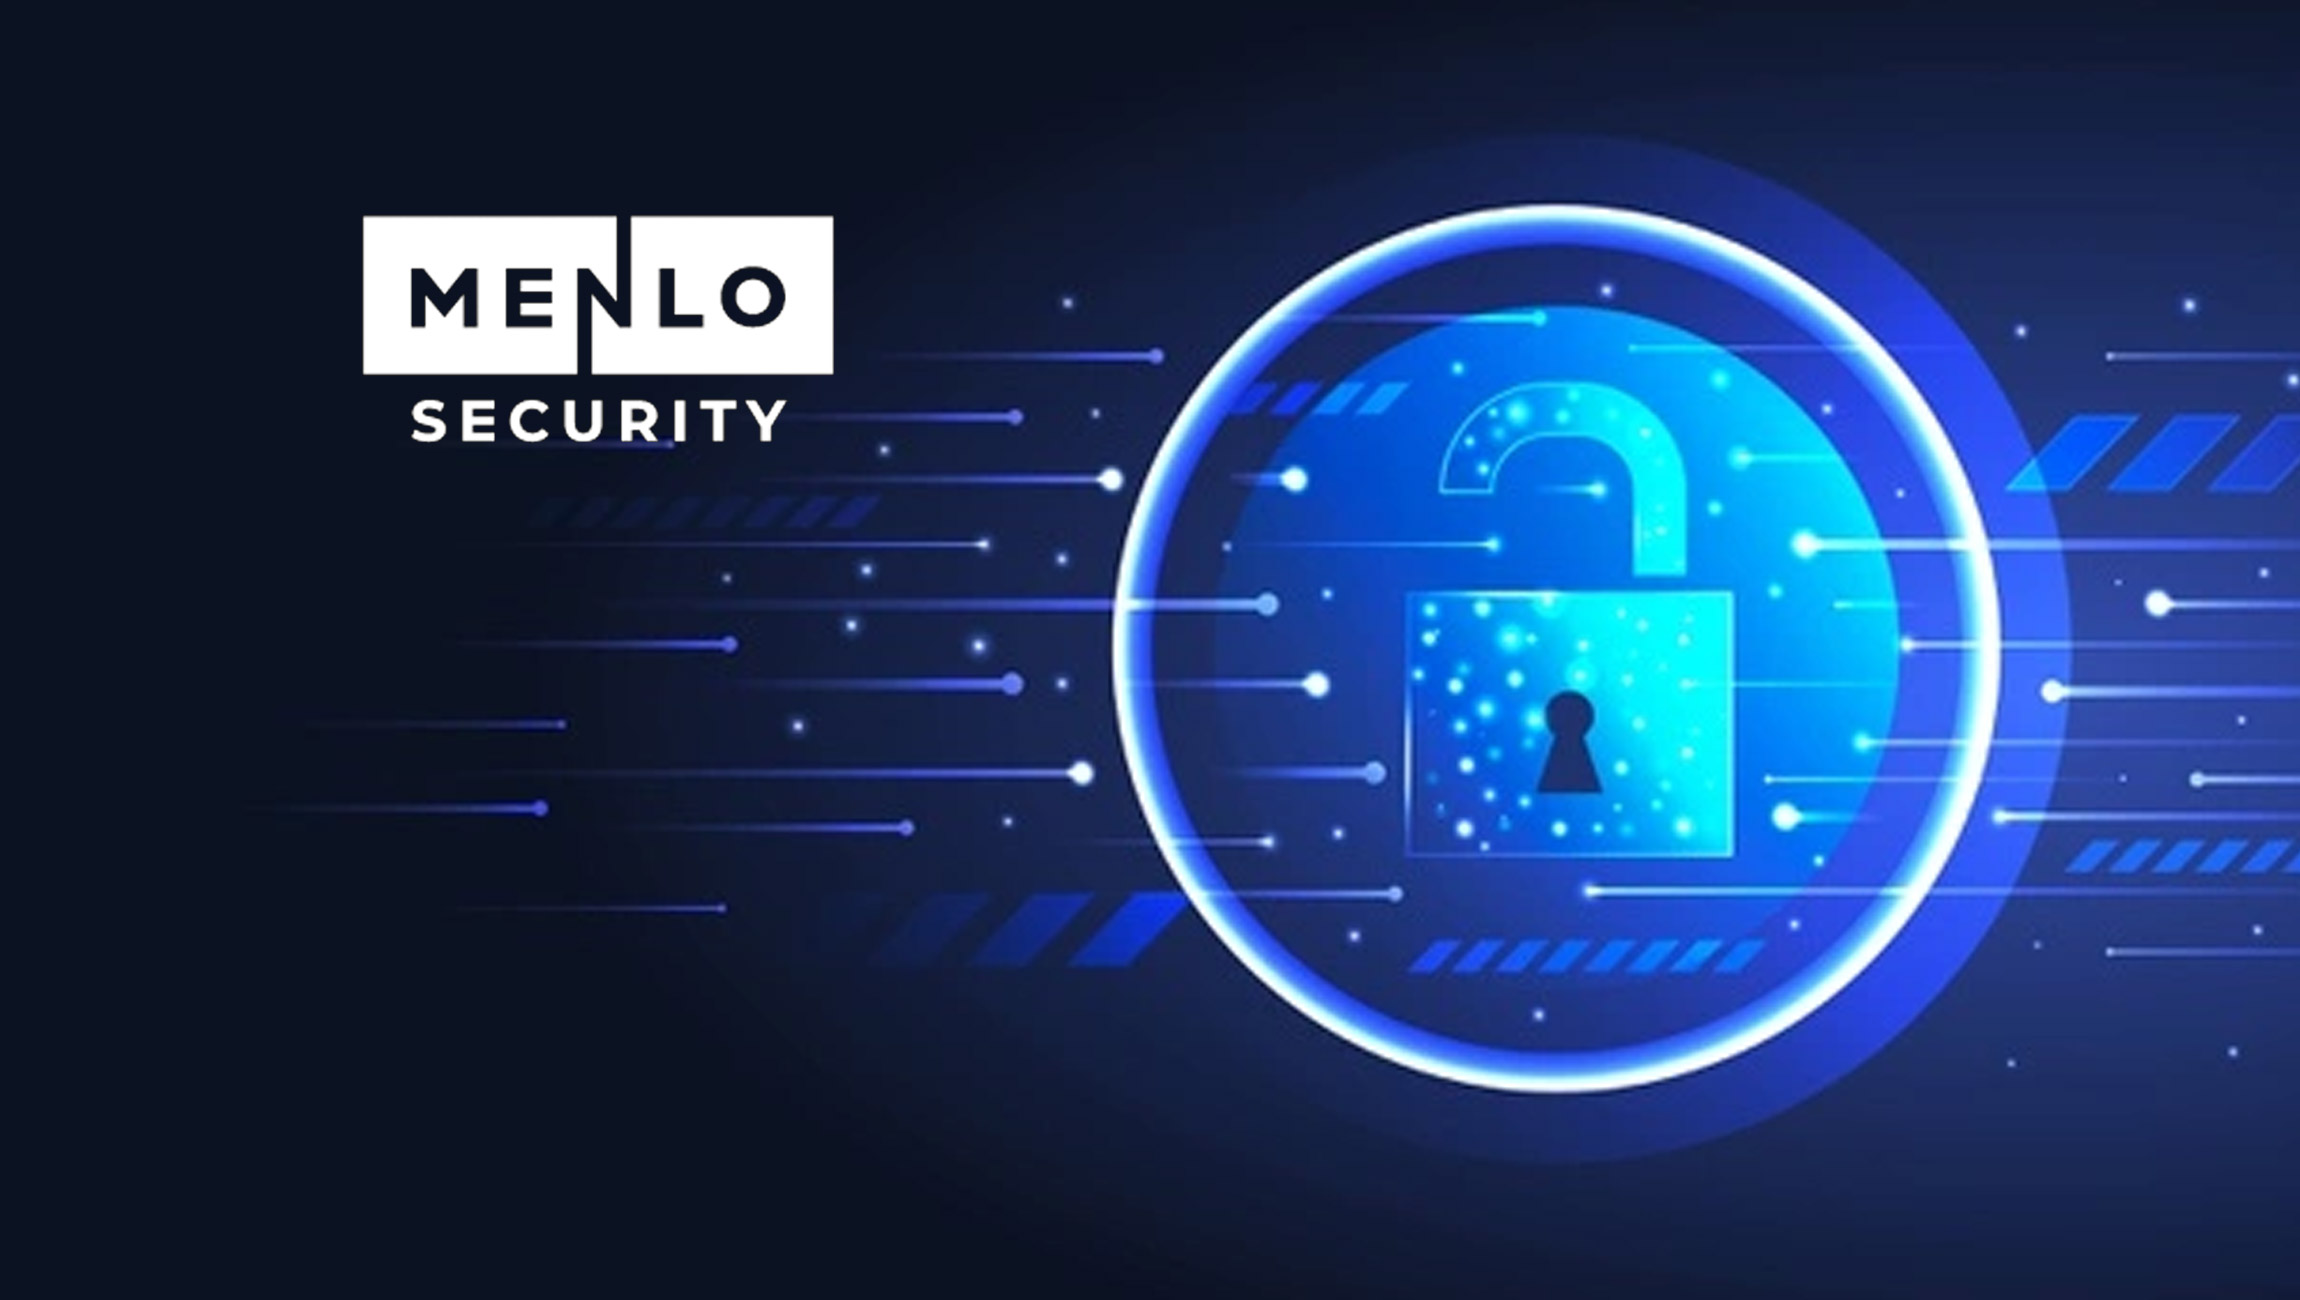 Menlo Security Uncovers Heightened Mobile Security Concerns